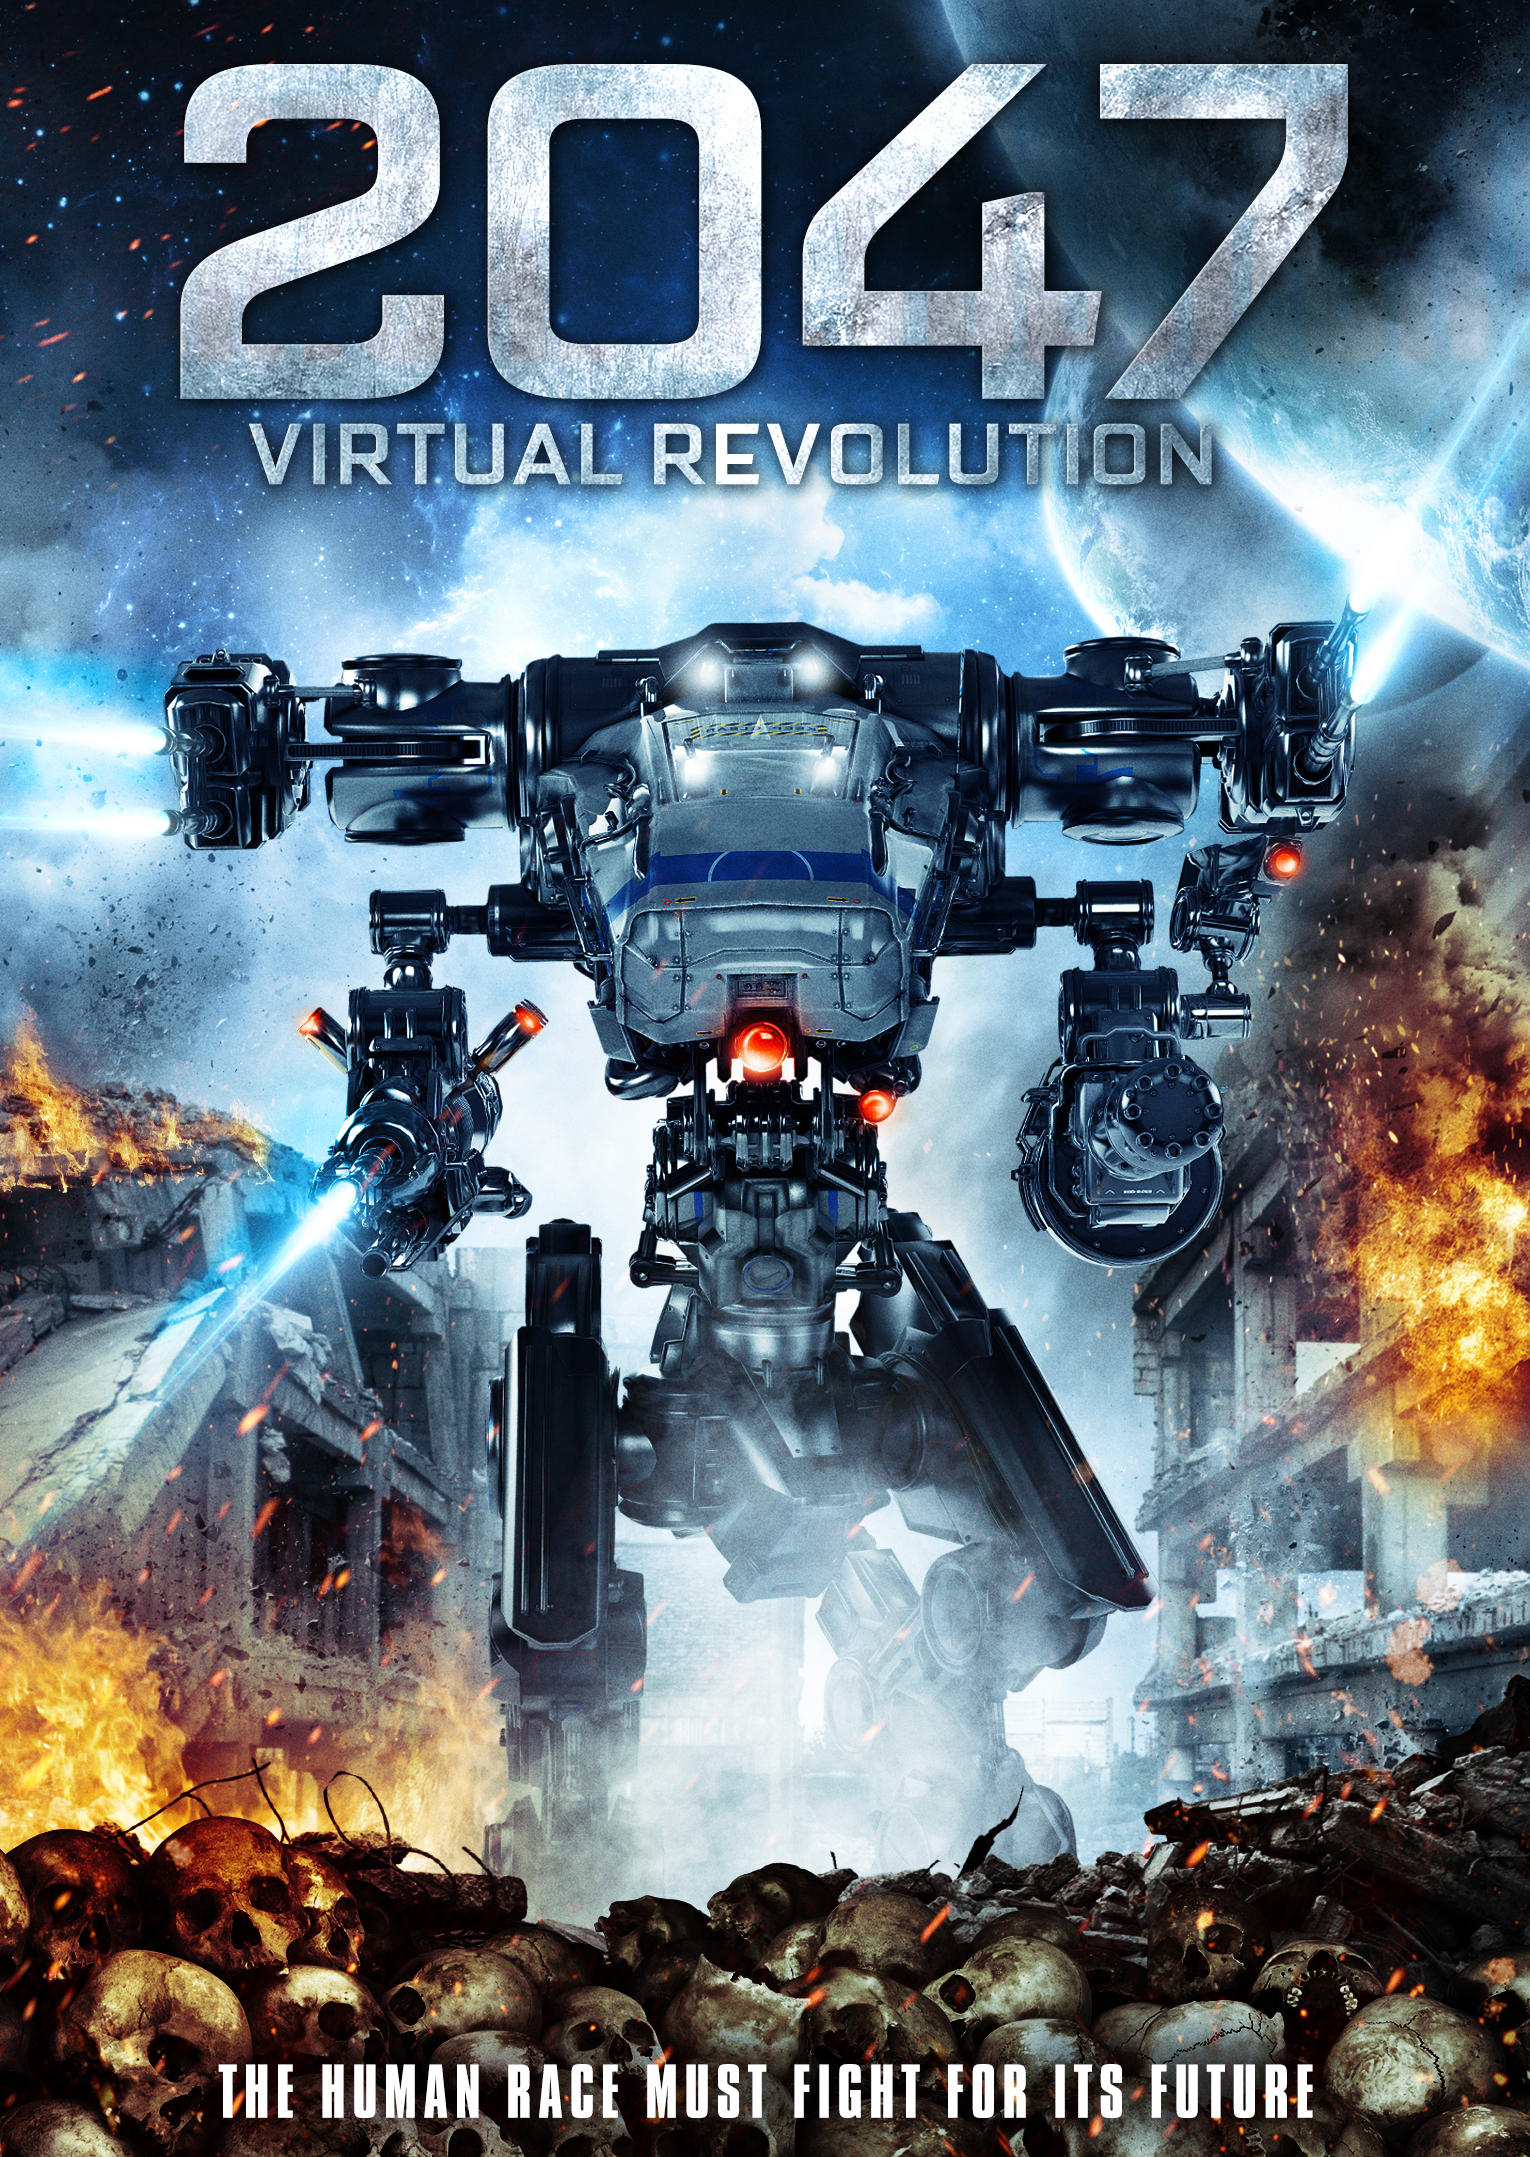 Guy-Roger Duvert's (Eyeborgs) stunning sci-fi thriller 2047: VIRTUAL  REVOLUTION, the recipient of over 40 awards, including Best Film at the Los  Angeles ...